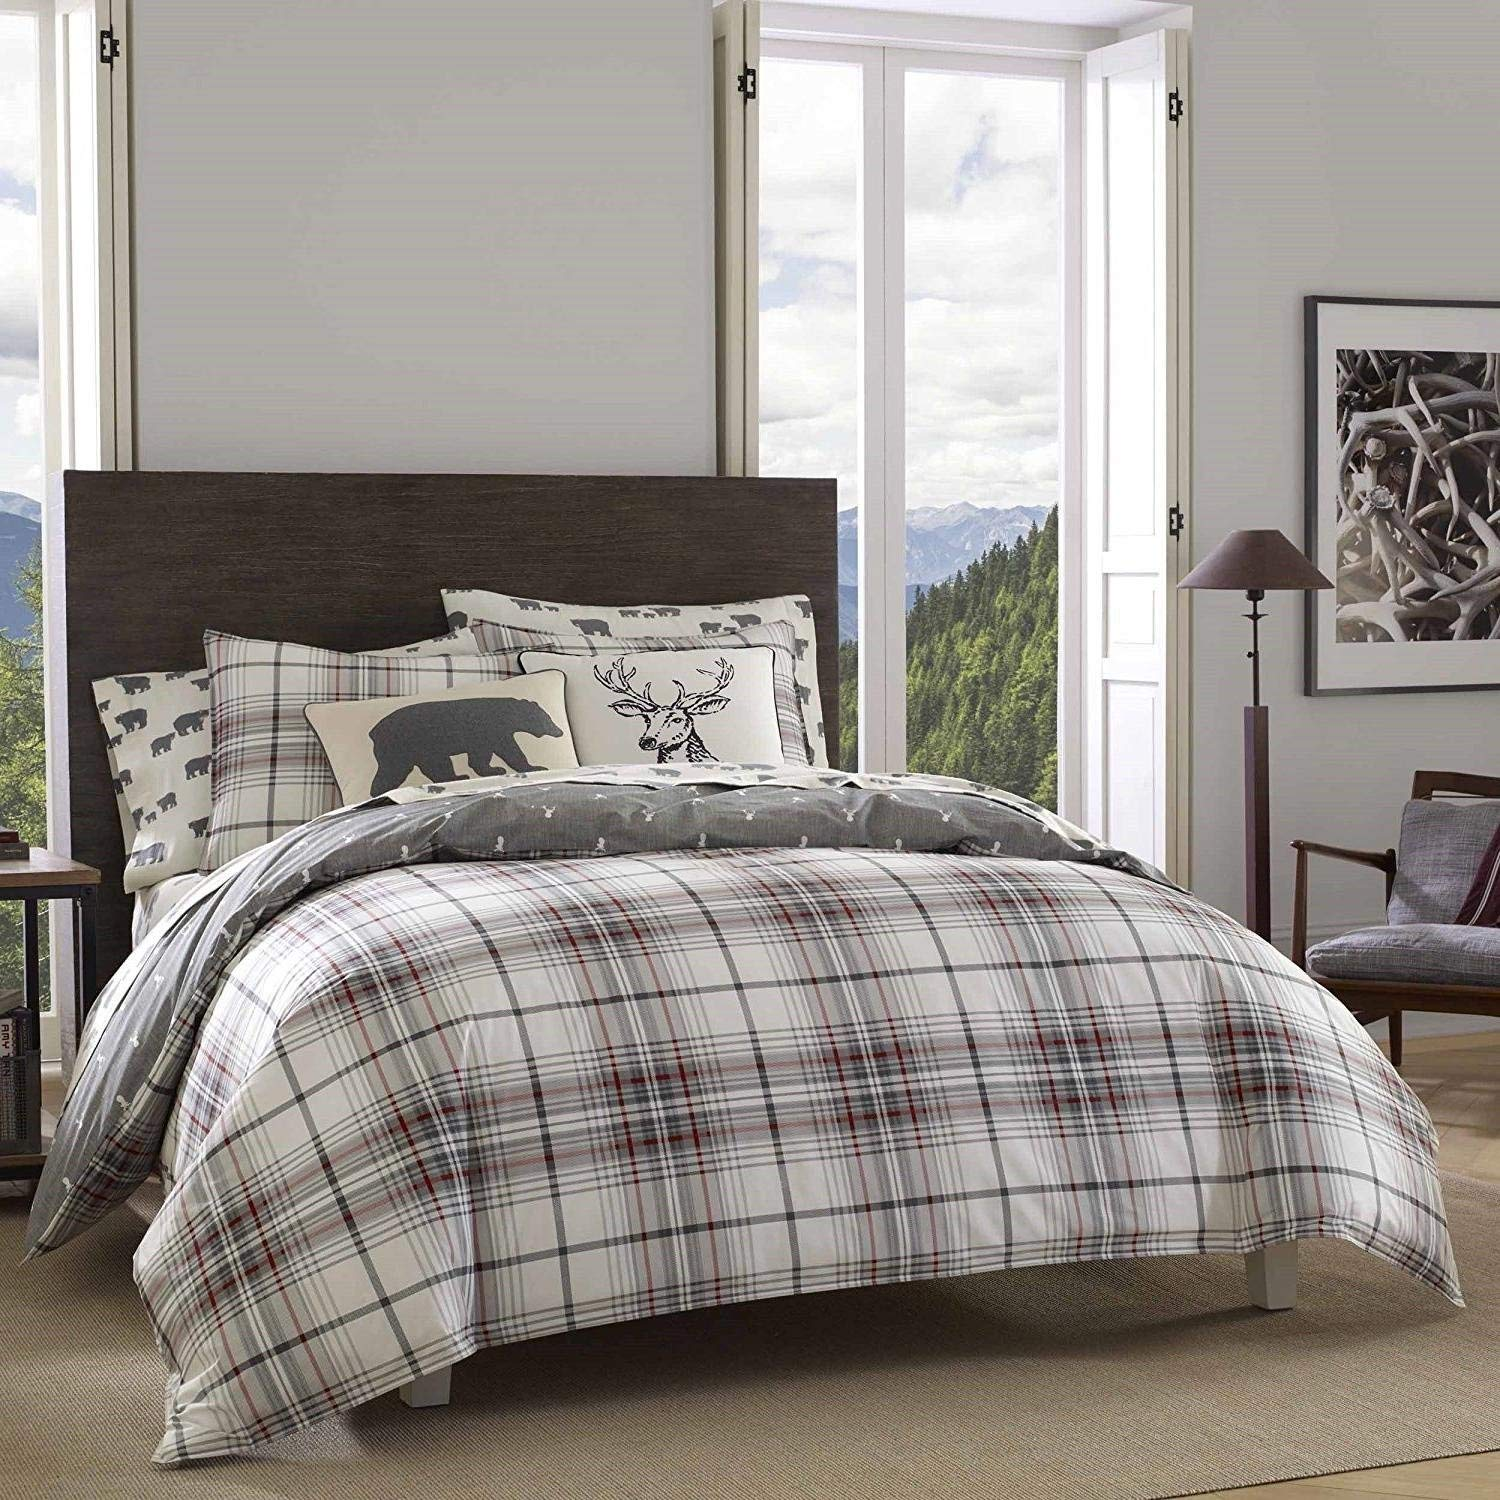 3pc Grey Plaid King Size Duvet Cover Set, Gray Horizontal Vertical Stripes Checked Bedding Cabin Themed Lodge Lumberjack Pattern Outdoors Country Squared Hunting Checkered, Cotton